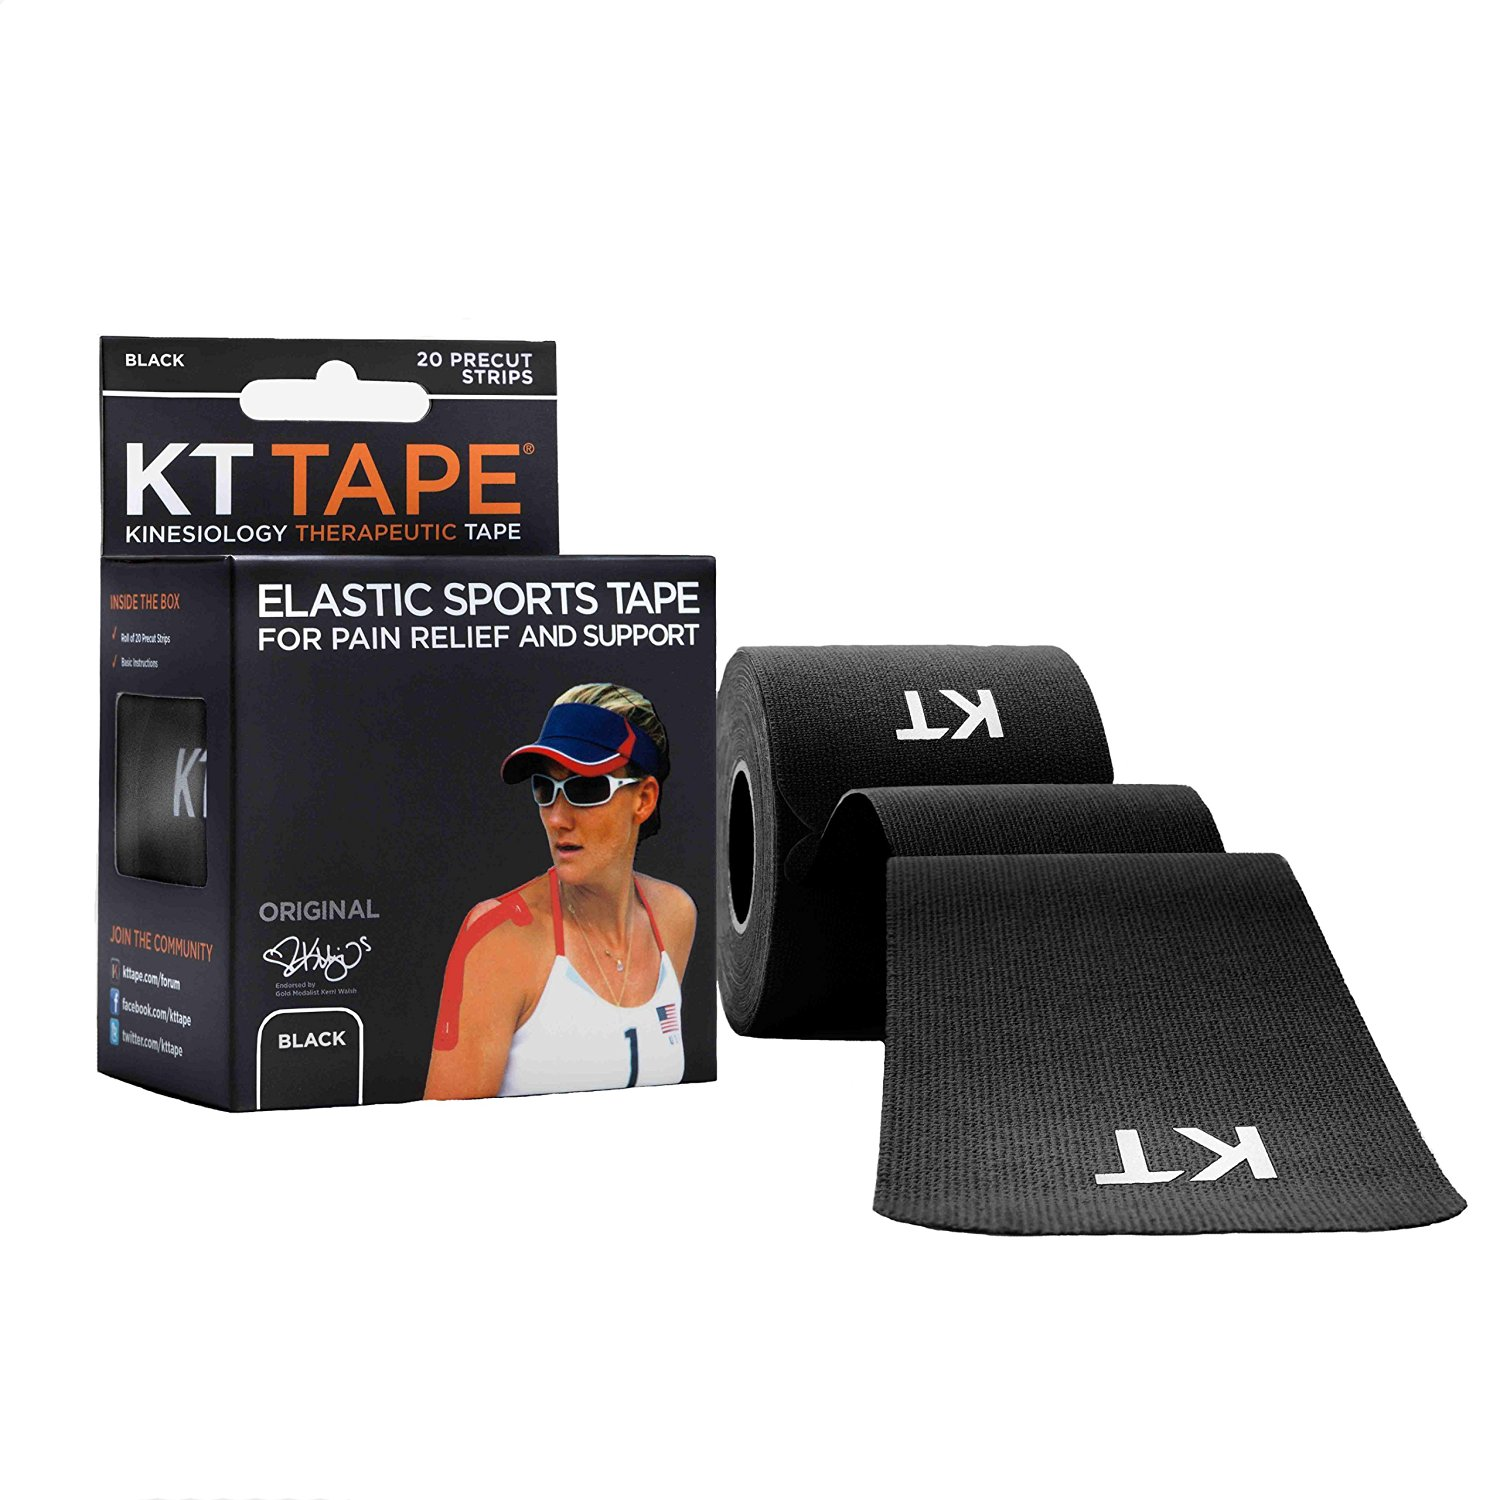 KT TAPE Original Cotton Elastic Kinesiology Therapeutic Sports Tape, 20 Precut 10in Strips, Breathable, Free Videos, Pro & Olympic Choice